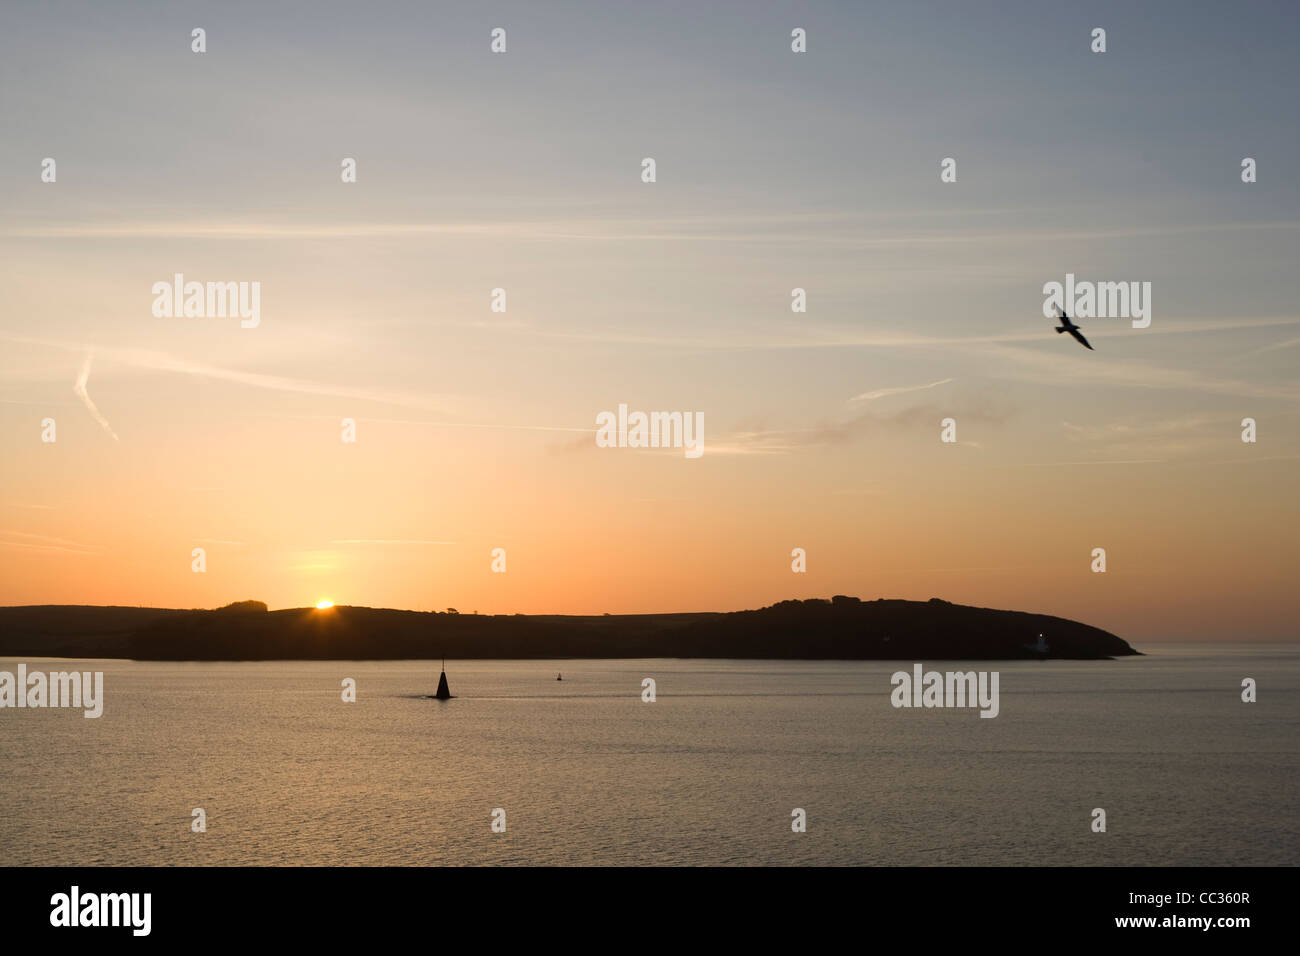 The sun rises over St Anthony's Head, Roseland peninsula, Cornwall seen from Pendennis Point. - Stock Image